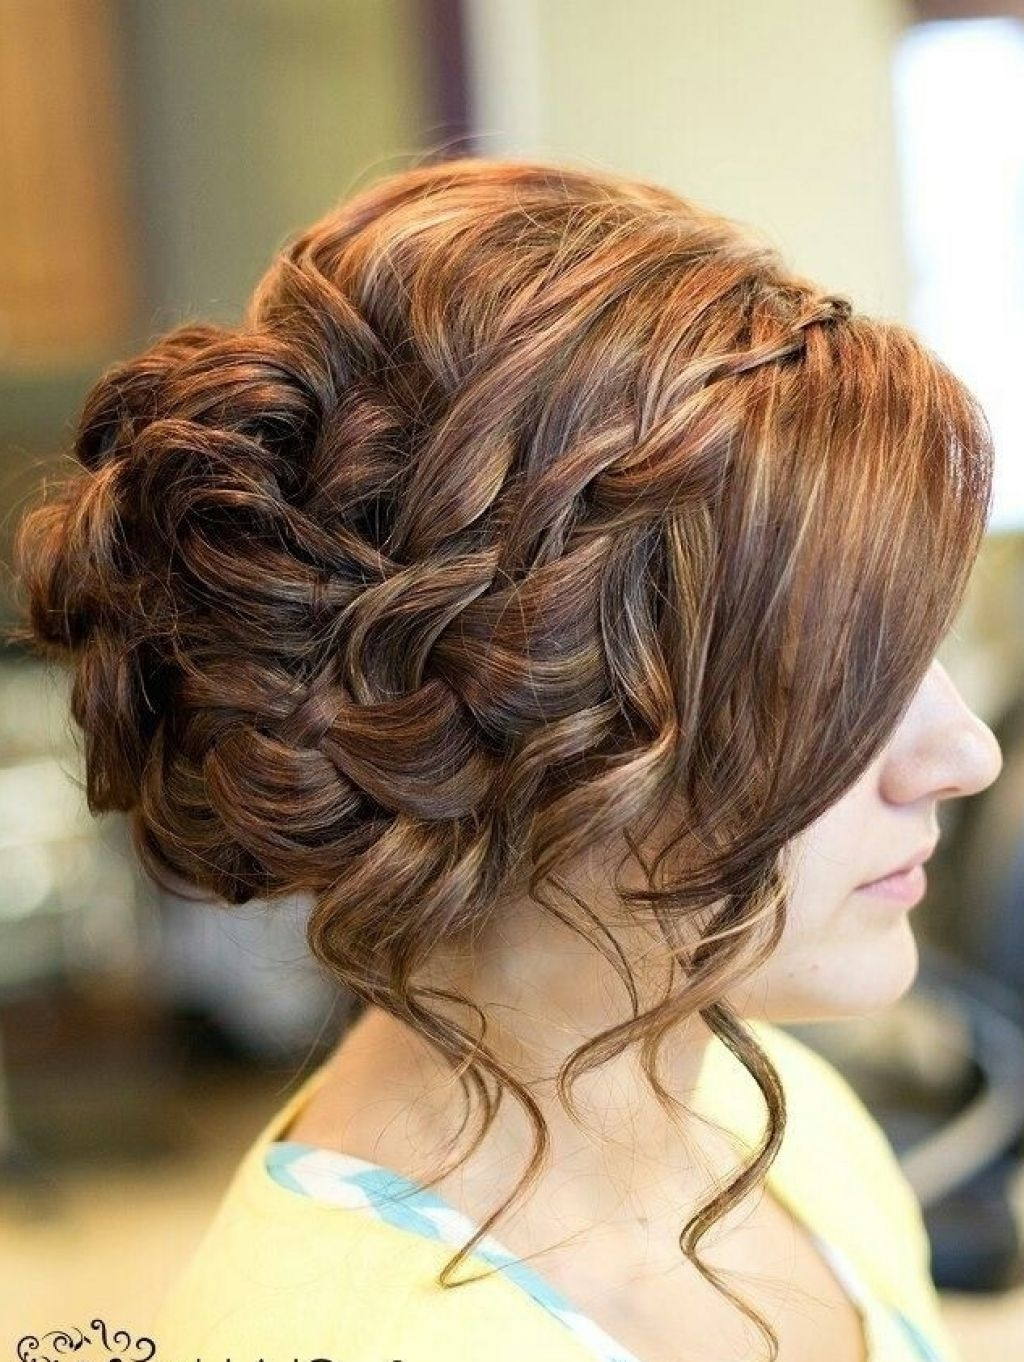 Favorite Formal Braided Bun Updo Hairstyles Pertaining To 14 Prom Hairstyles For Long Hair That Are Simply Adorable (View 4 of 15)